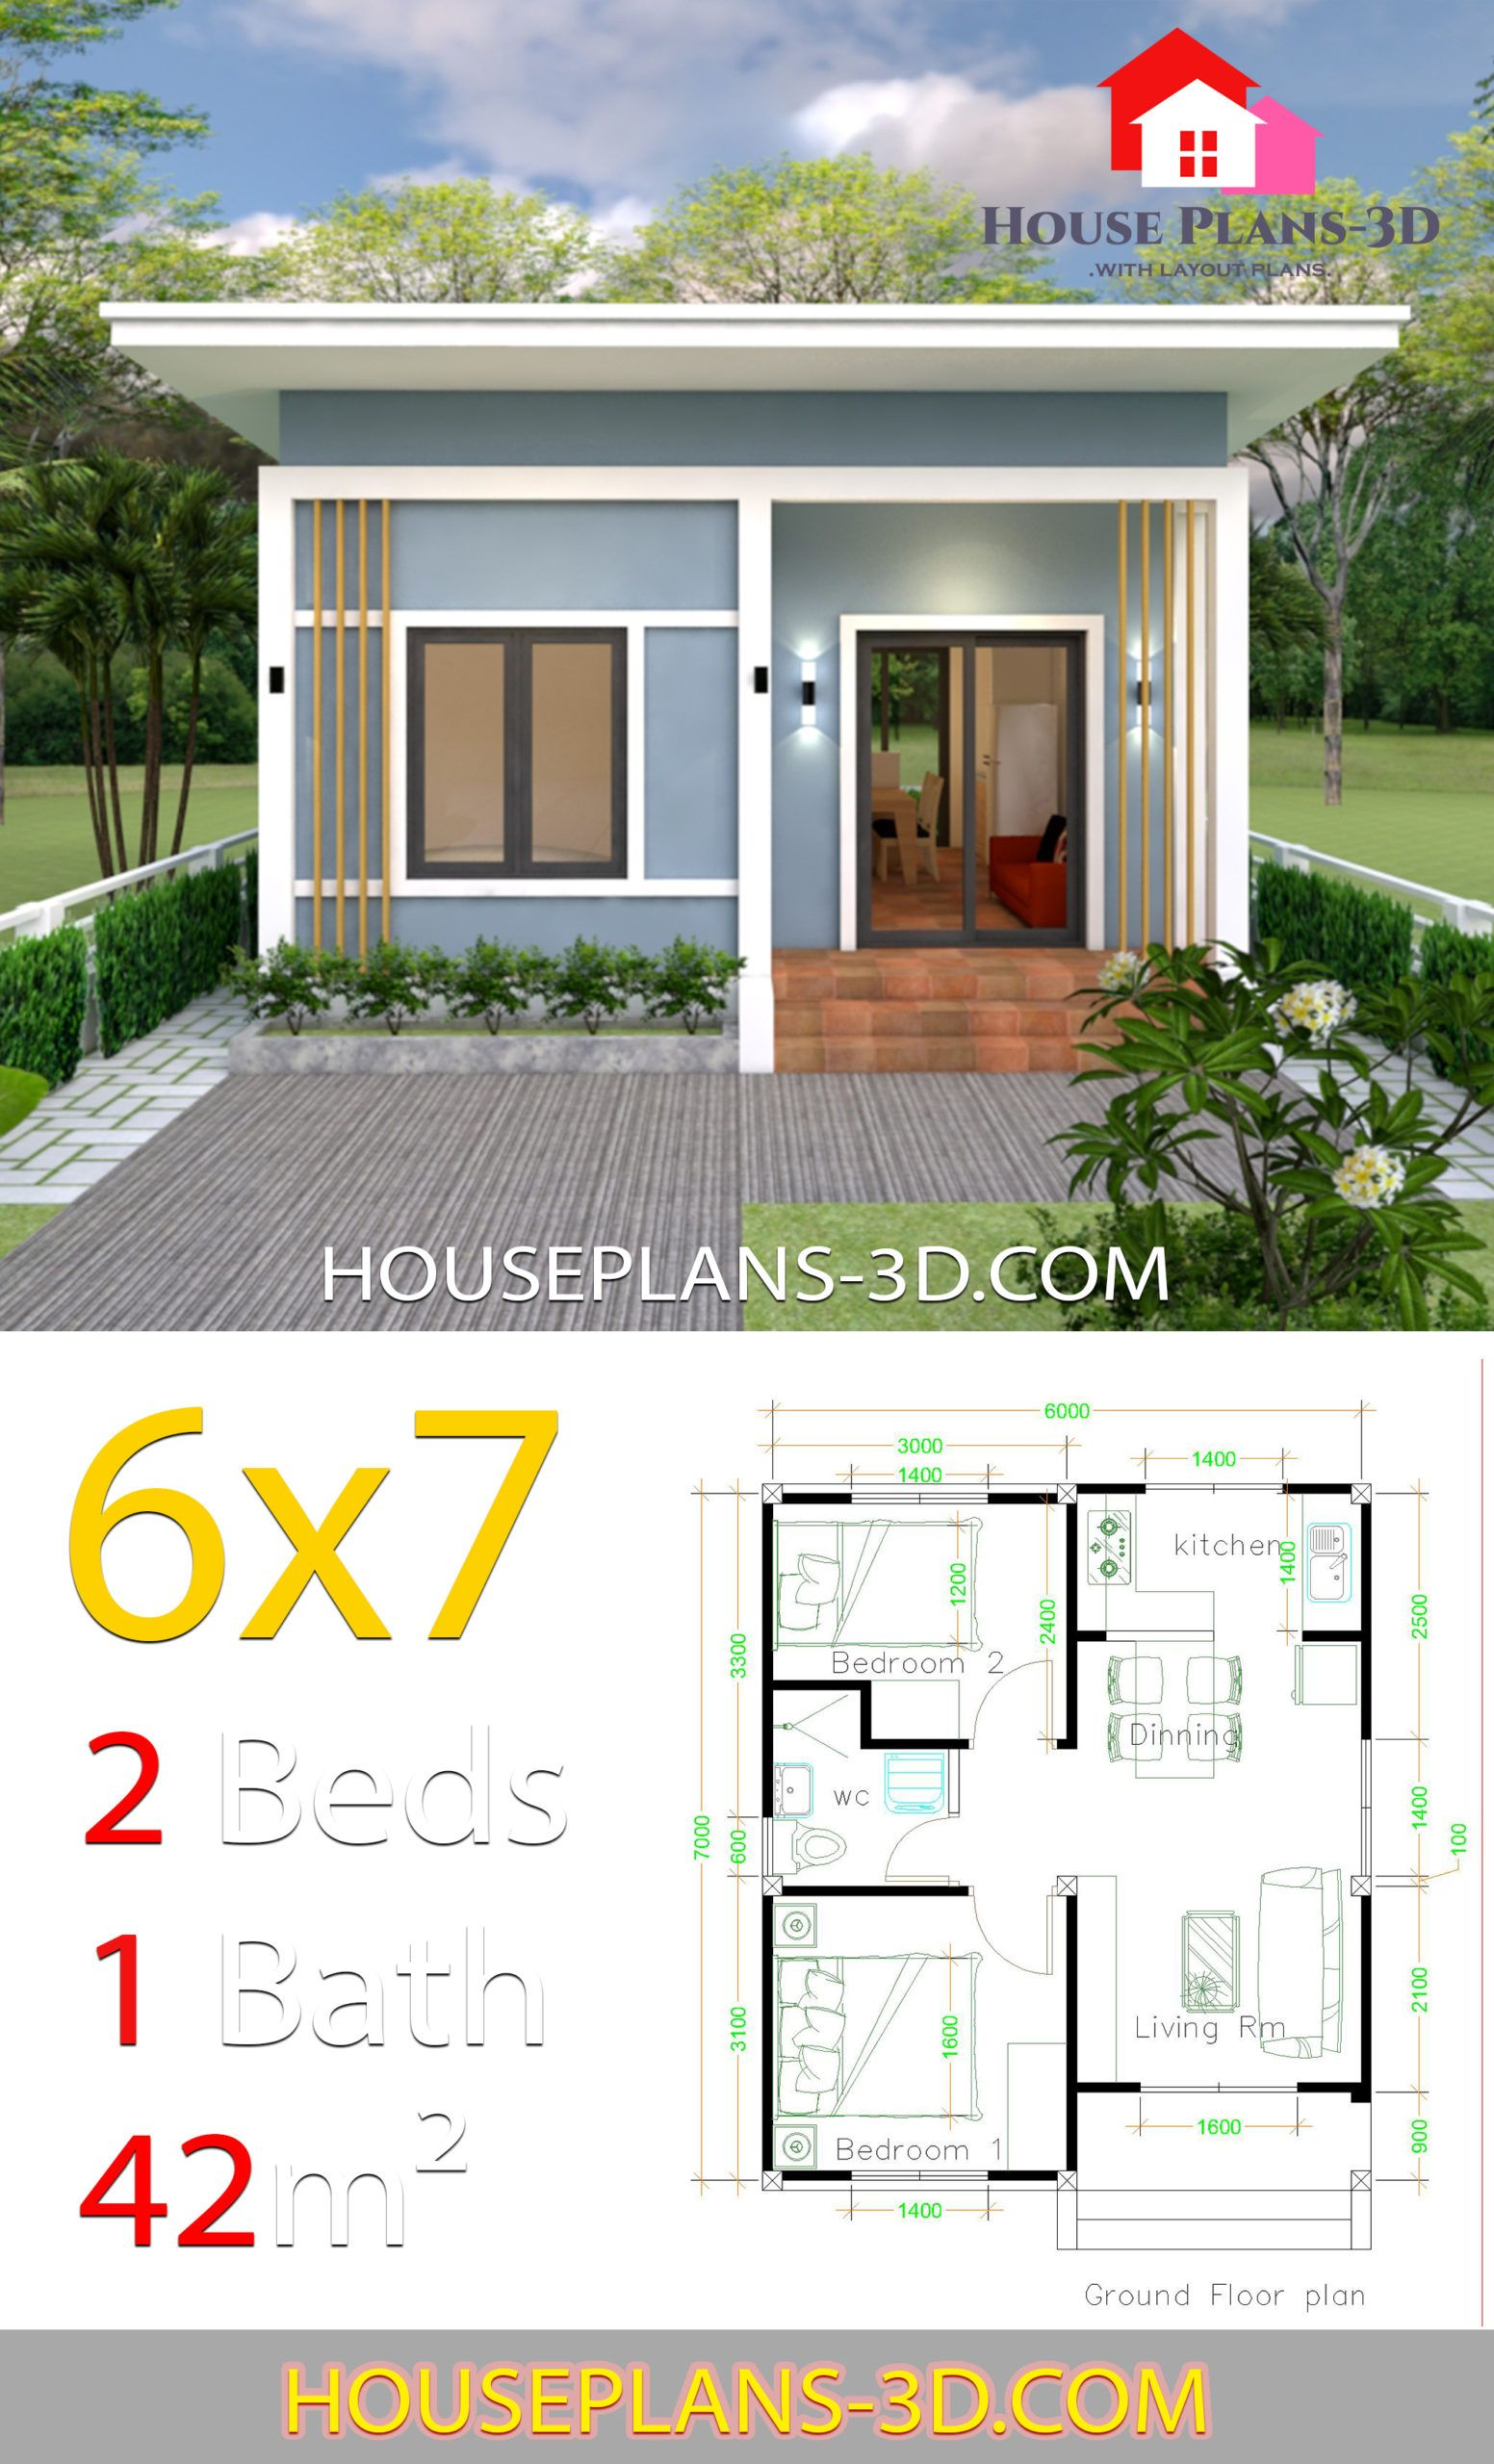 Simple House Plans 6x7 With 2 Bedrooms Shed Roof House Plans 3d House Plans Small House Layout Simple House Design